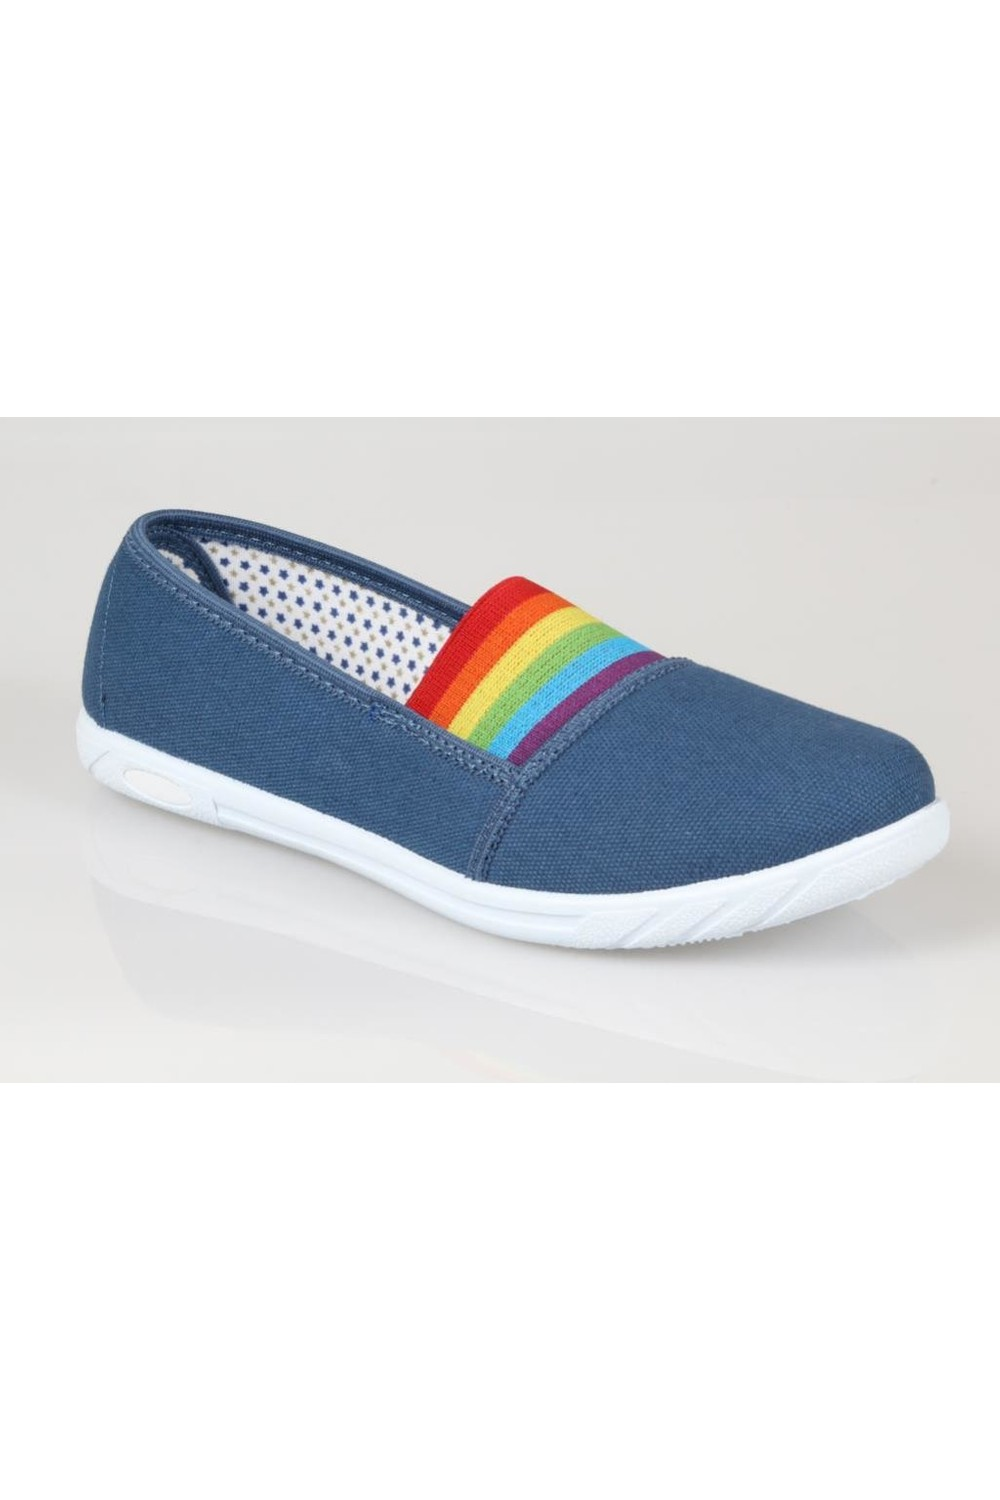 Polaris Women's Casual Shoes